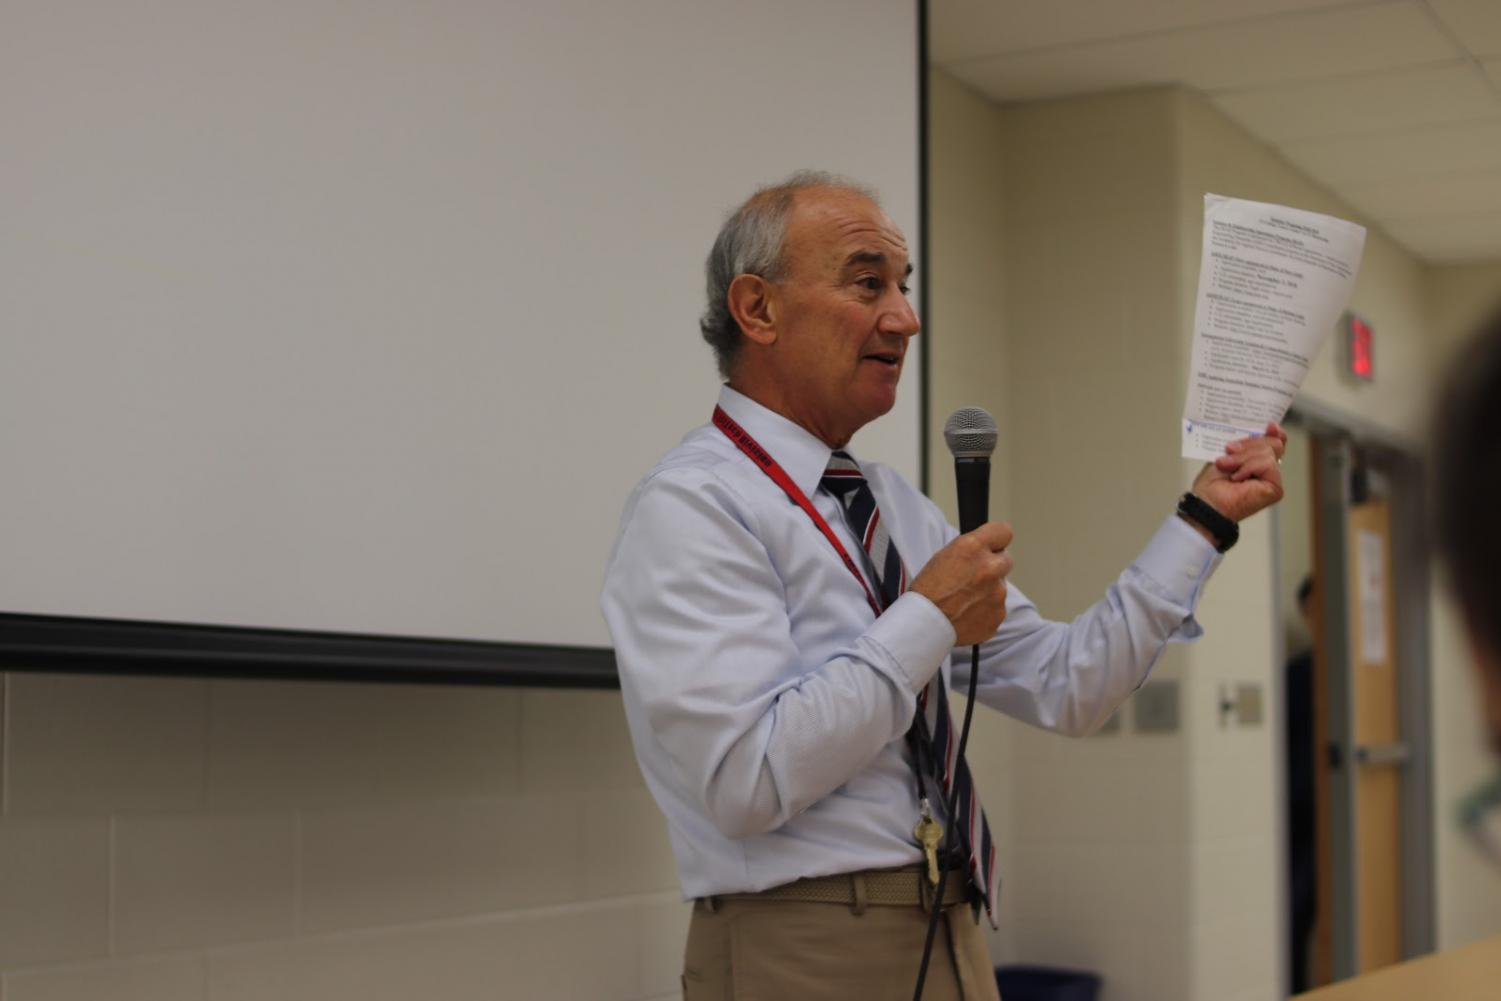 On Oct. 24, Alfred Lampazzi presented to underclassmen and juniors on prospective summer internship programs within the VA region and how to be a successful candidate in a contentious application process. Despite student's occupied eighth period schedules, well over 200 individuals attended the interest meeting over the course of two blocks and acquired insight on how to be an active internship seeker.